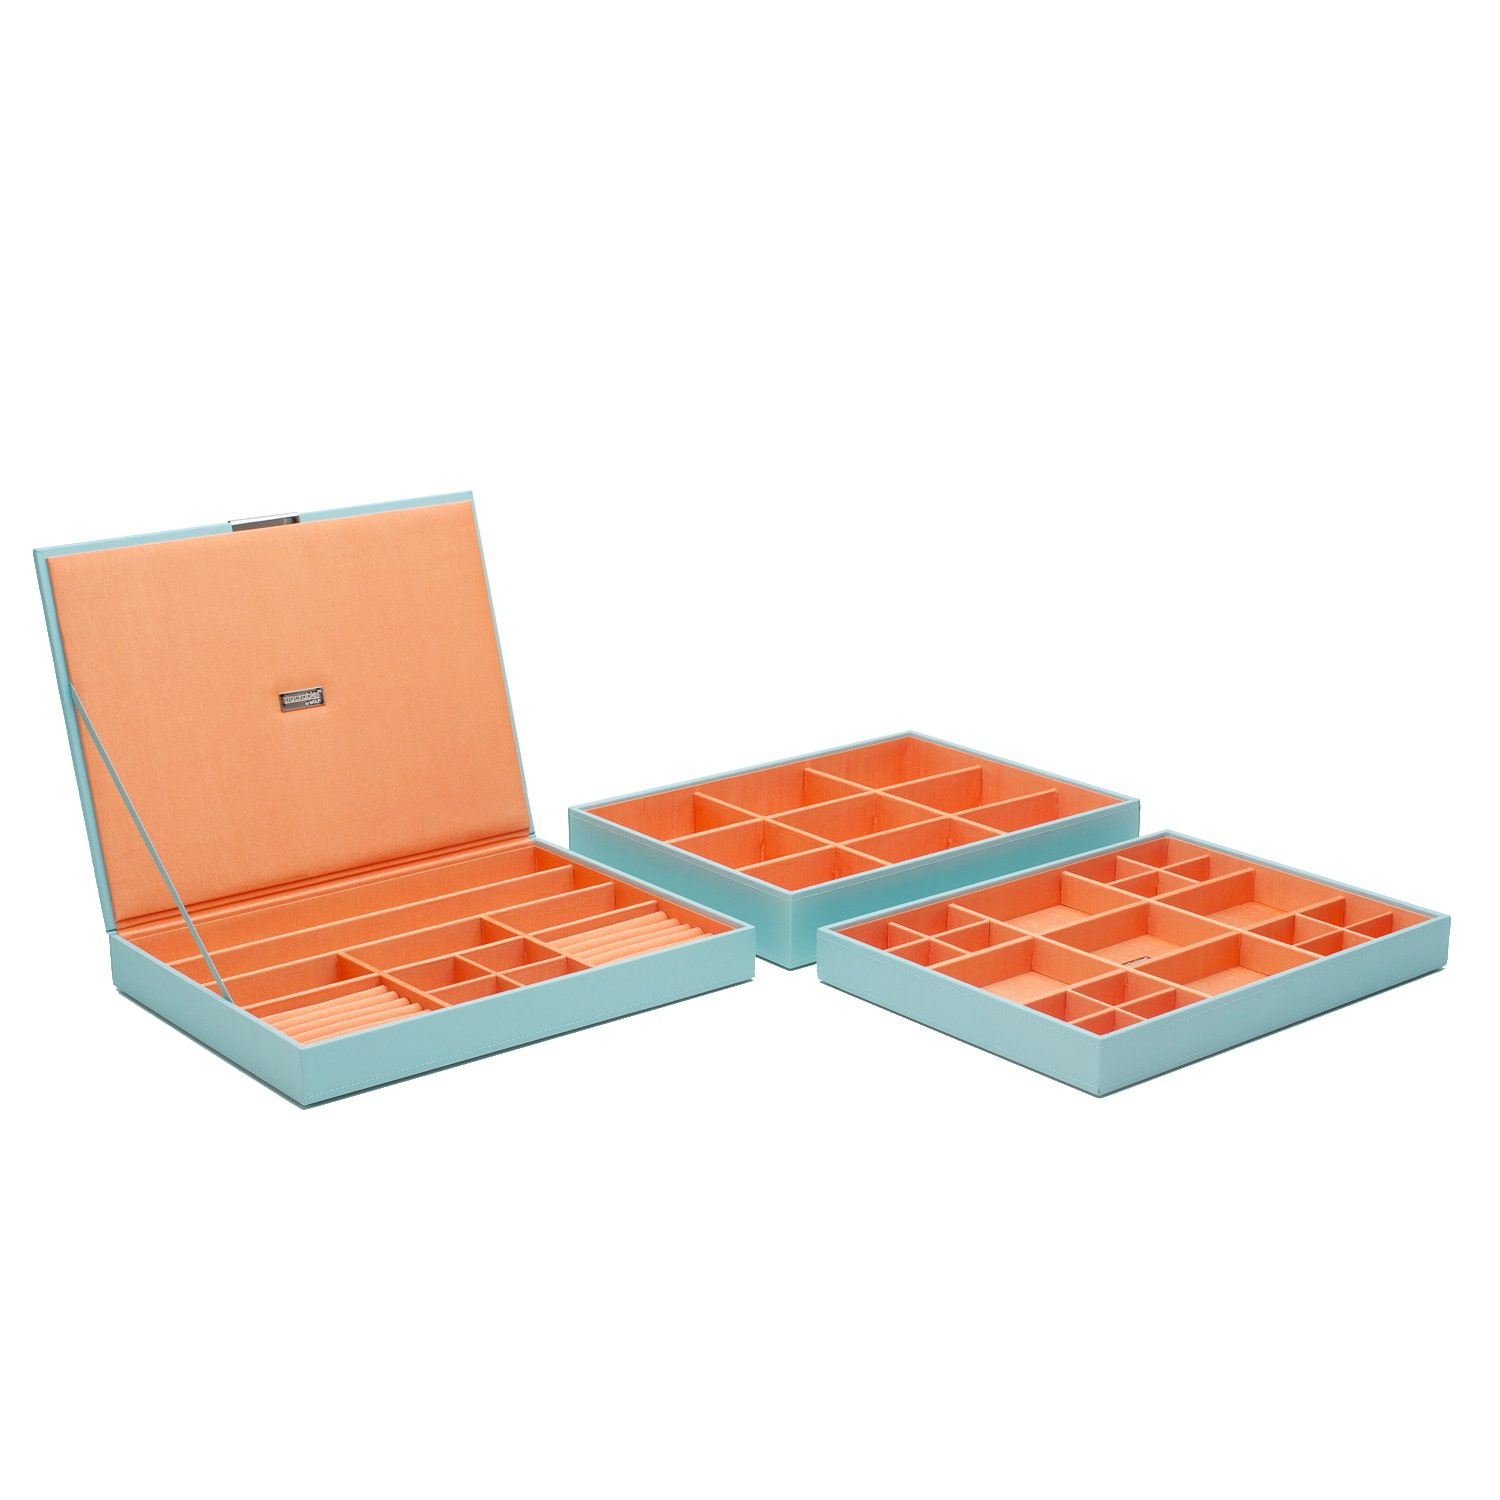 WOLF 300605 Large Stackable Tray Set by WOLF (Image #2)